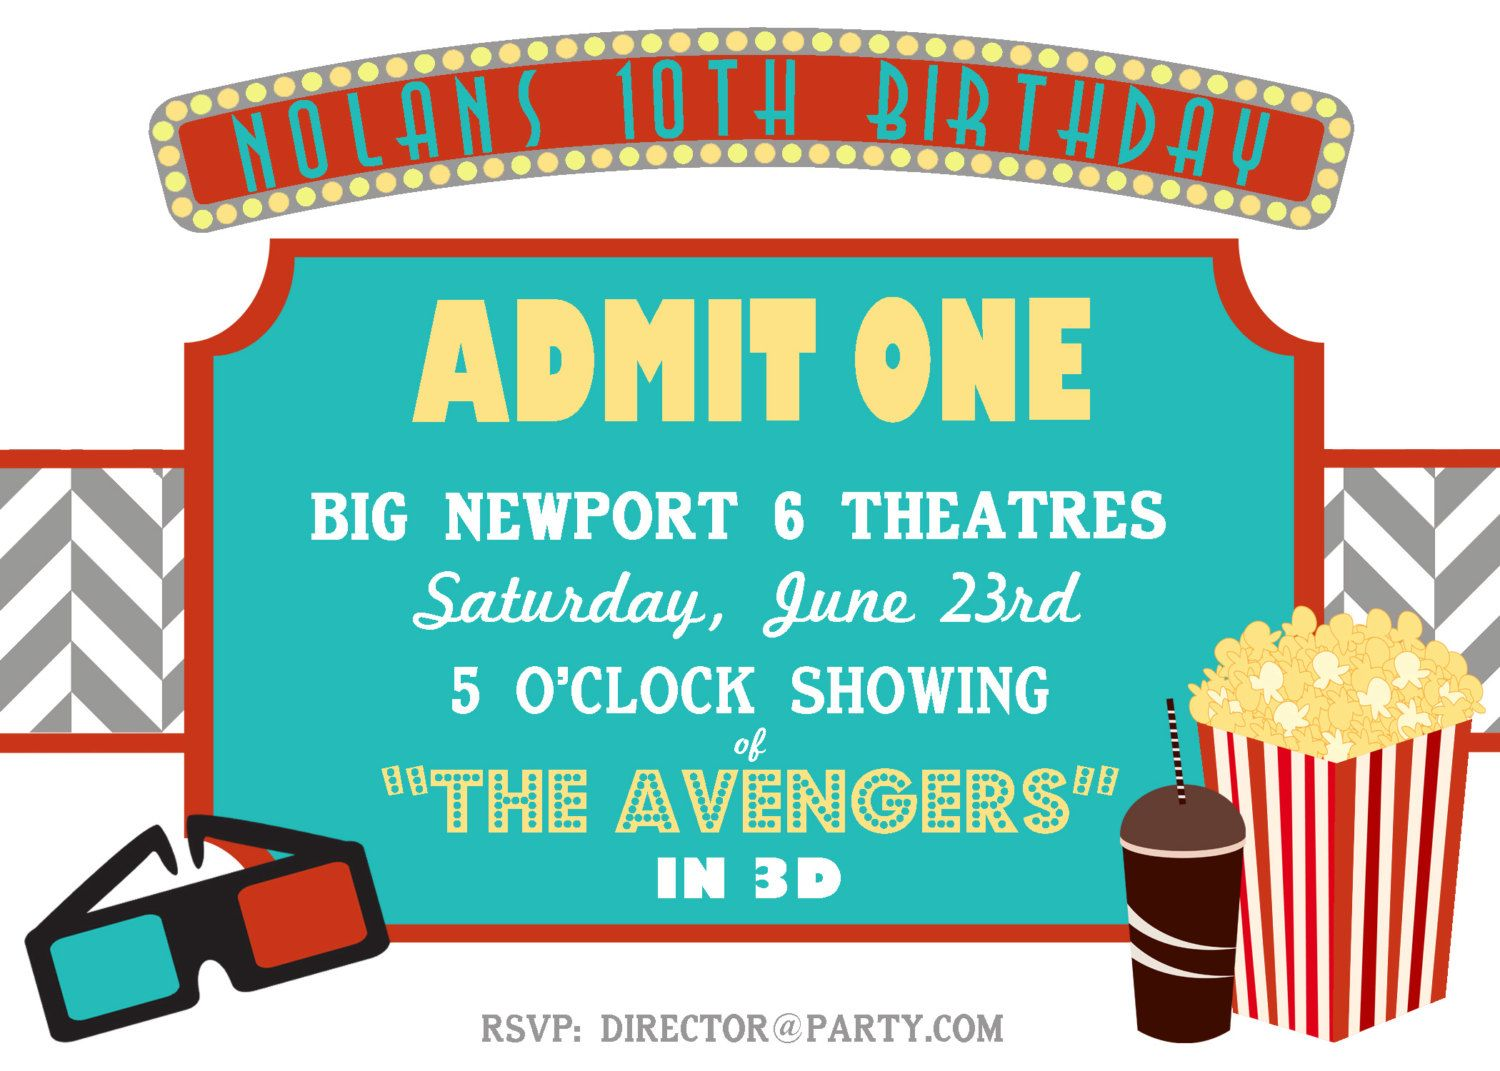 Movie Theater Party Invitation - Cinema and Theatre - Party Supplies ...